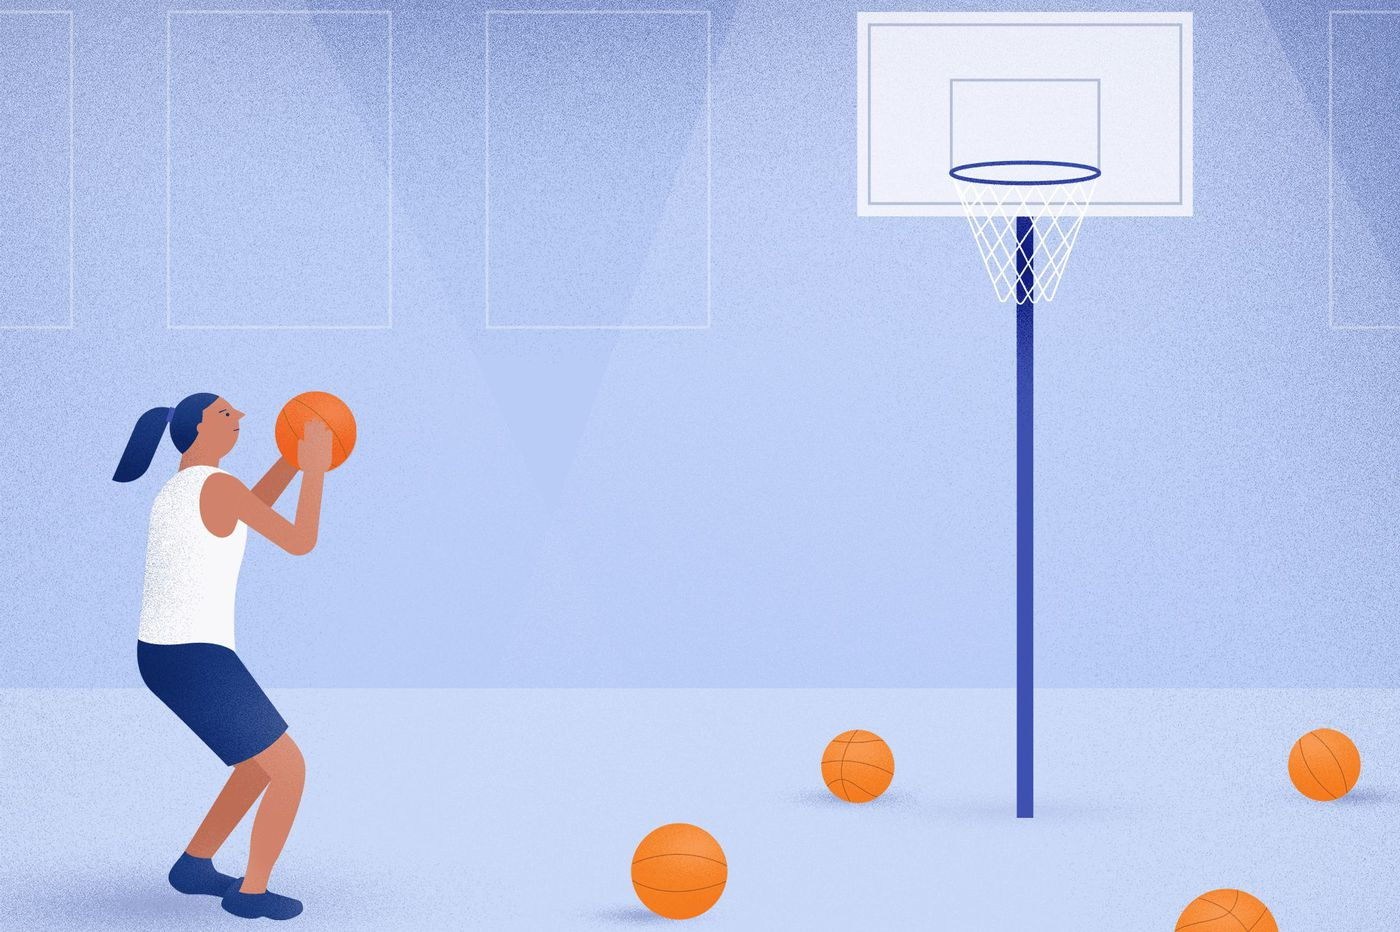 Practice is more important than talent when developing skills